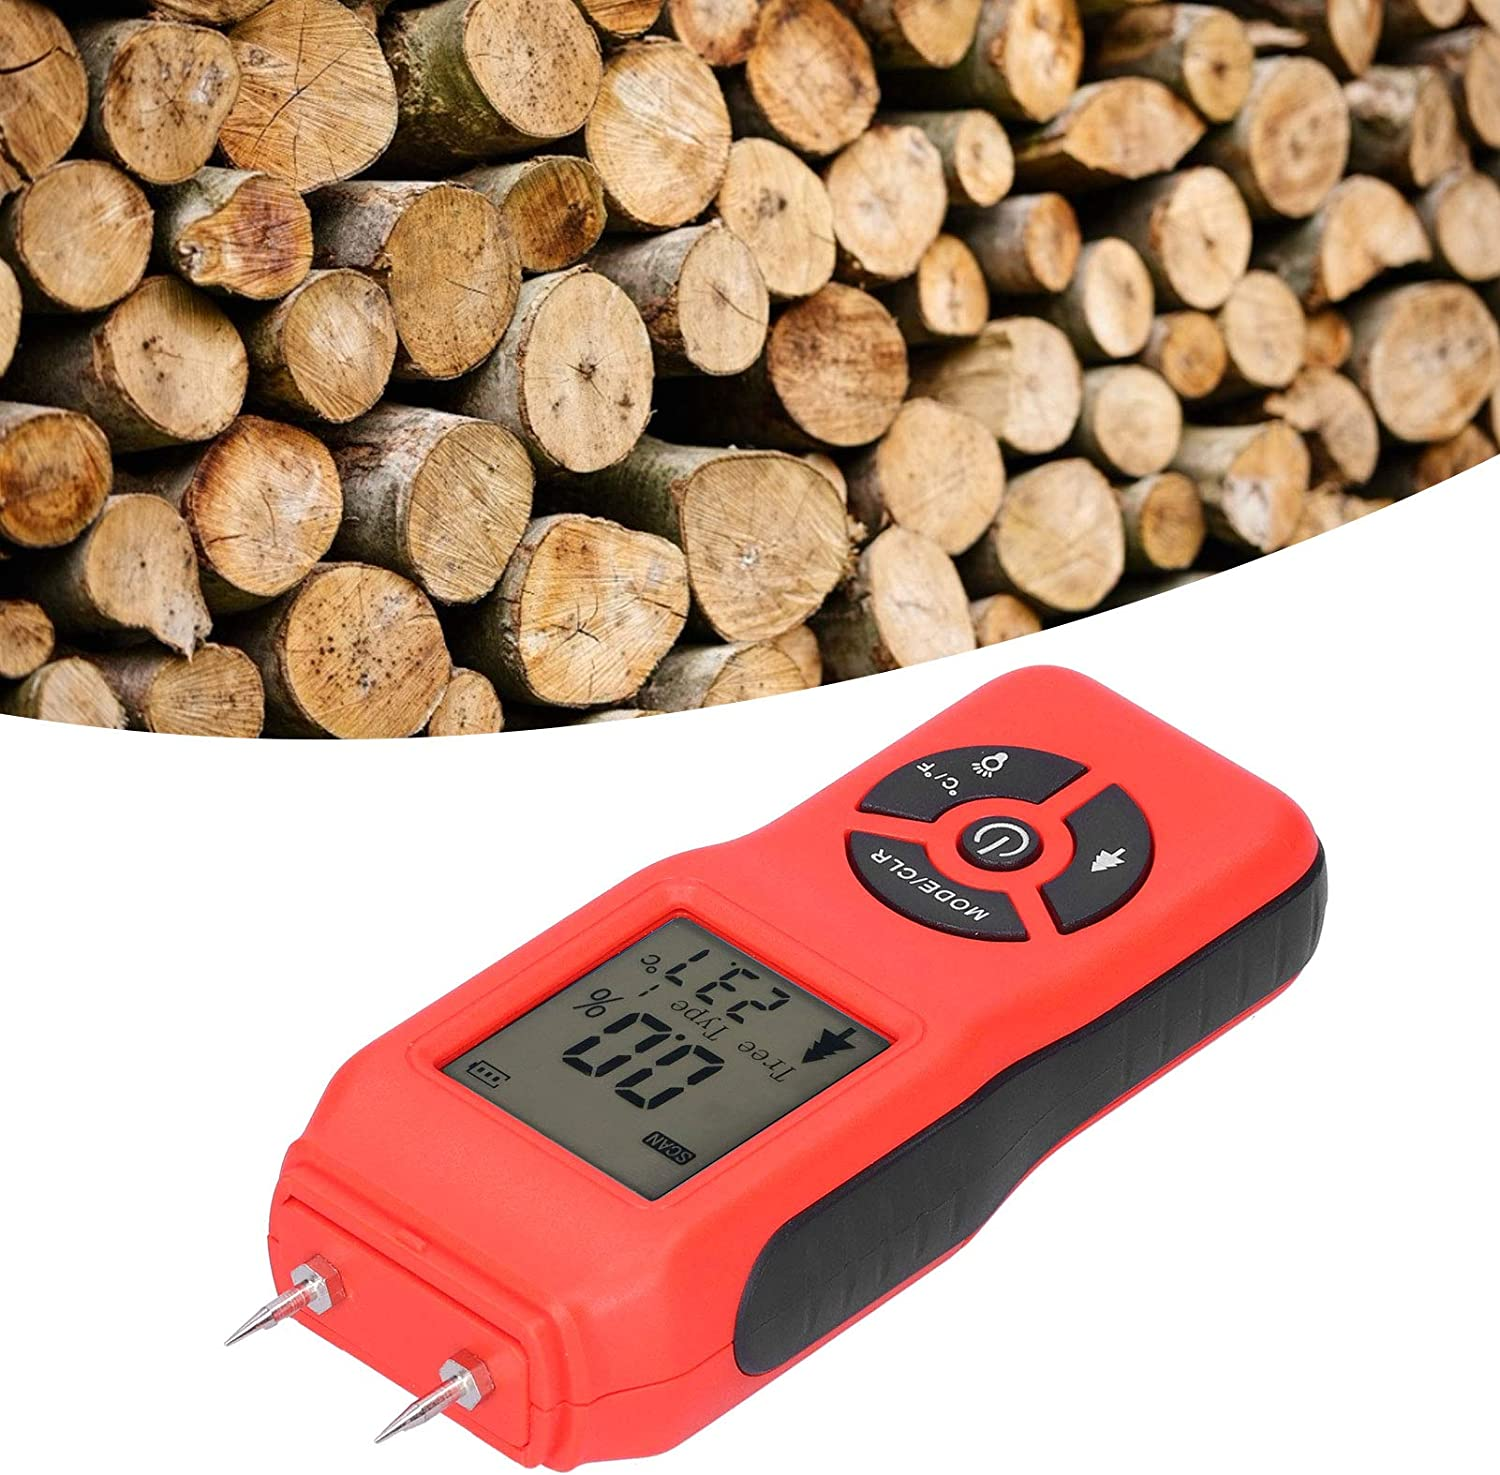 hong Wood Moisture Tester Max 62% OFF Detector Sale Special Price Display Ho LCD for